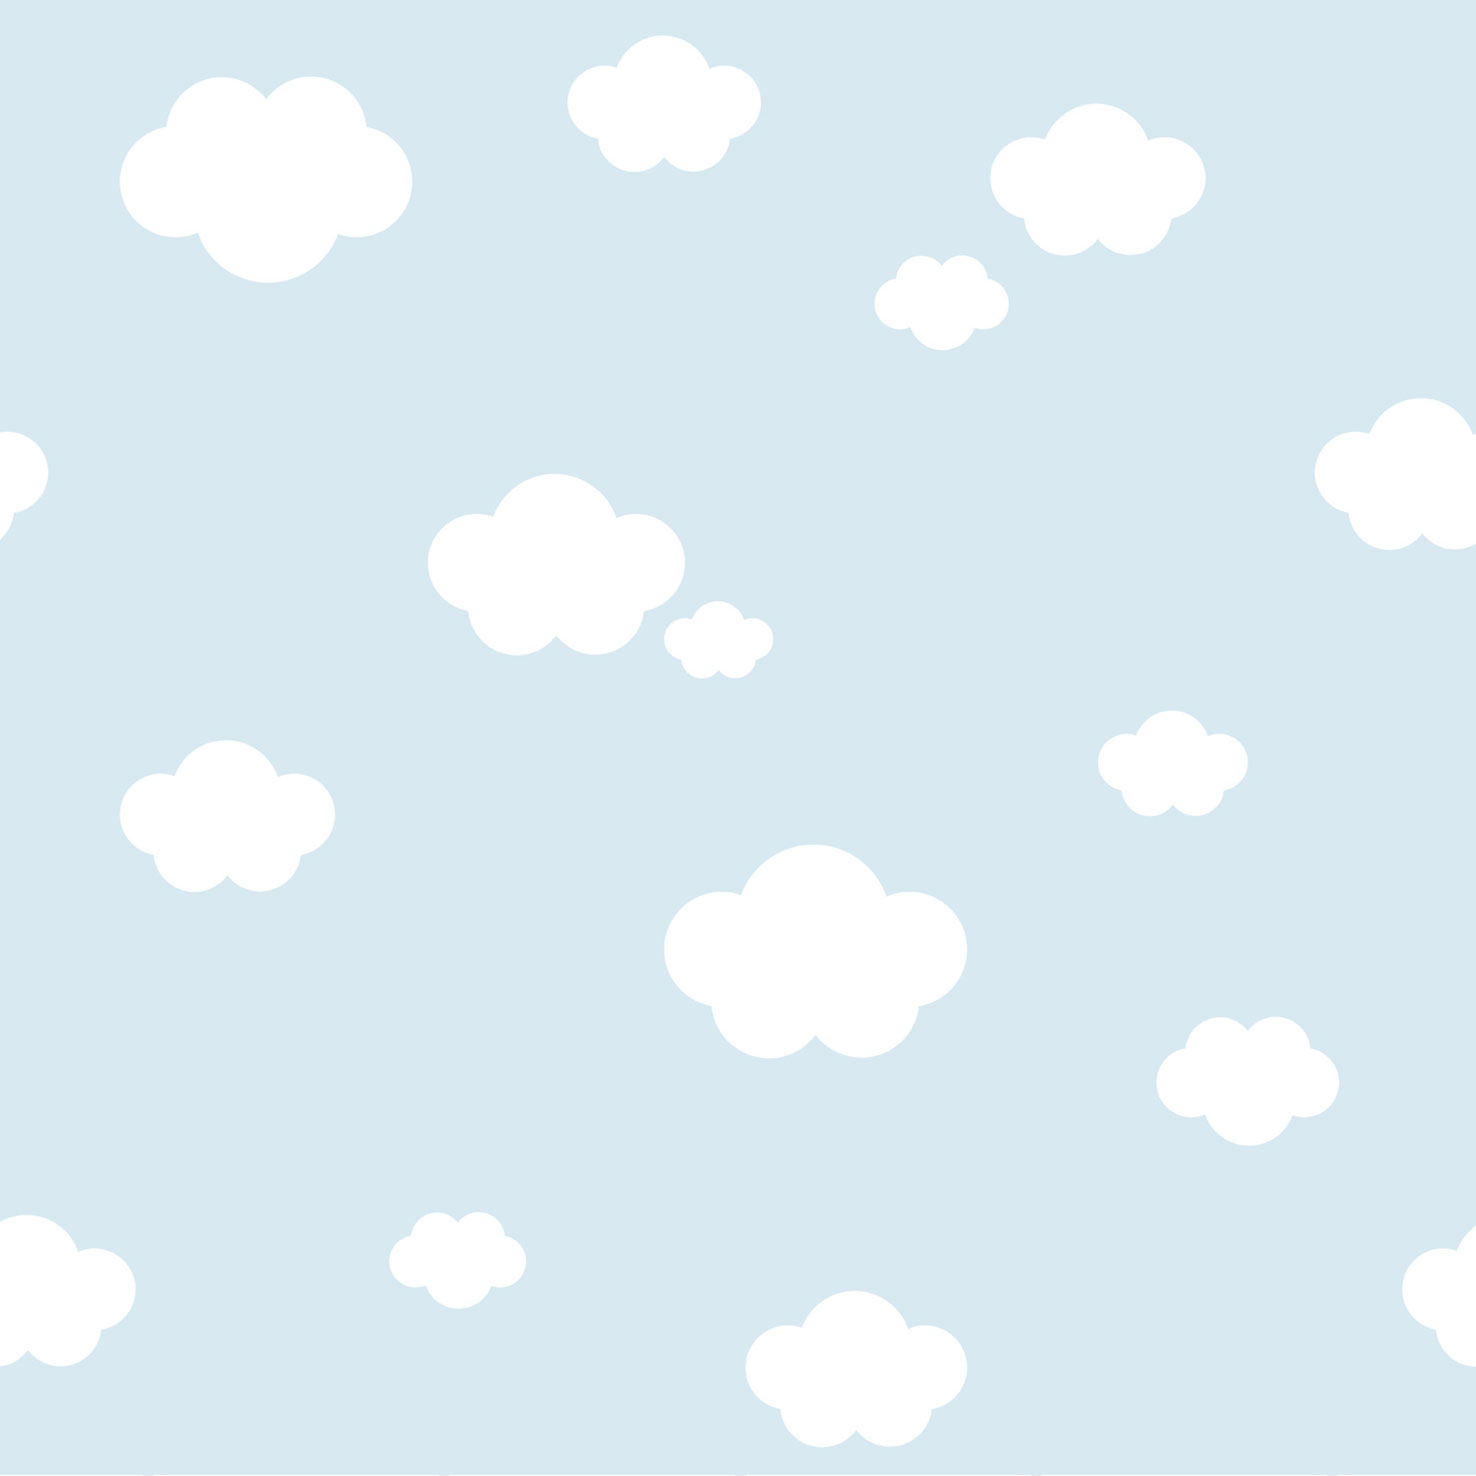 Kids Wallpaper Cloud Sky World Wide Walls Blue 330235